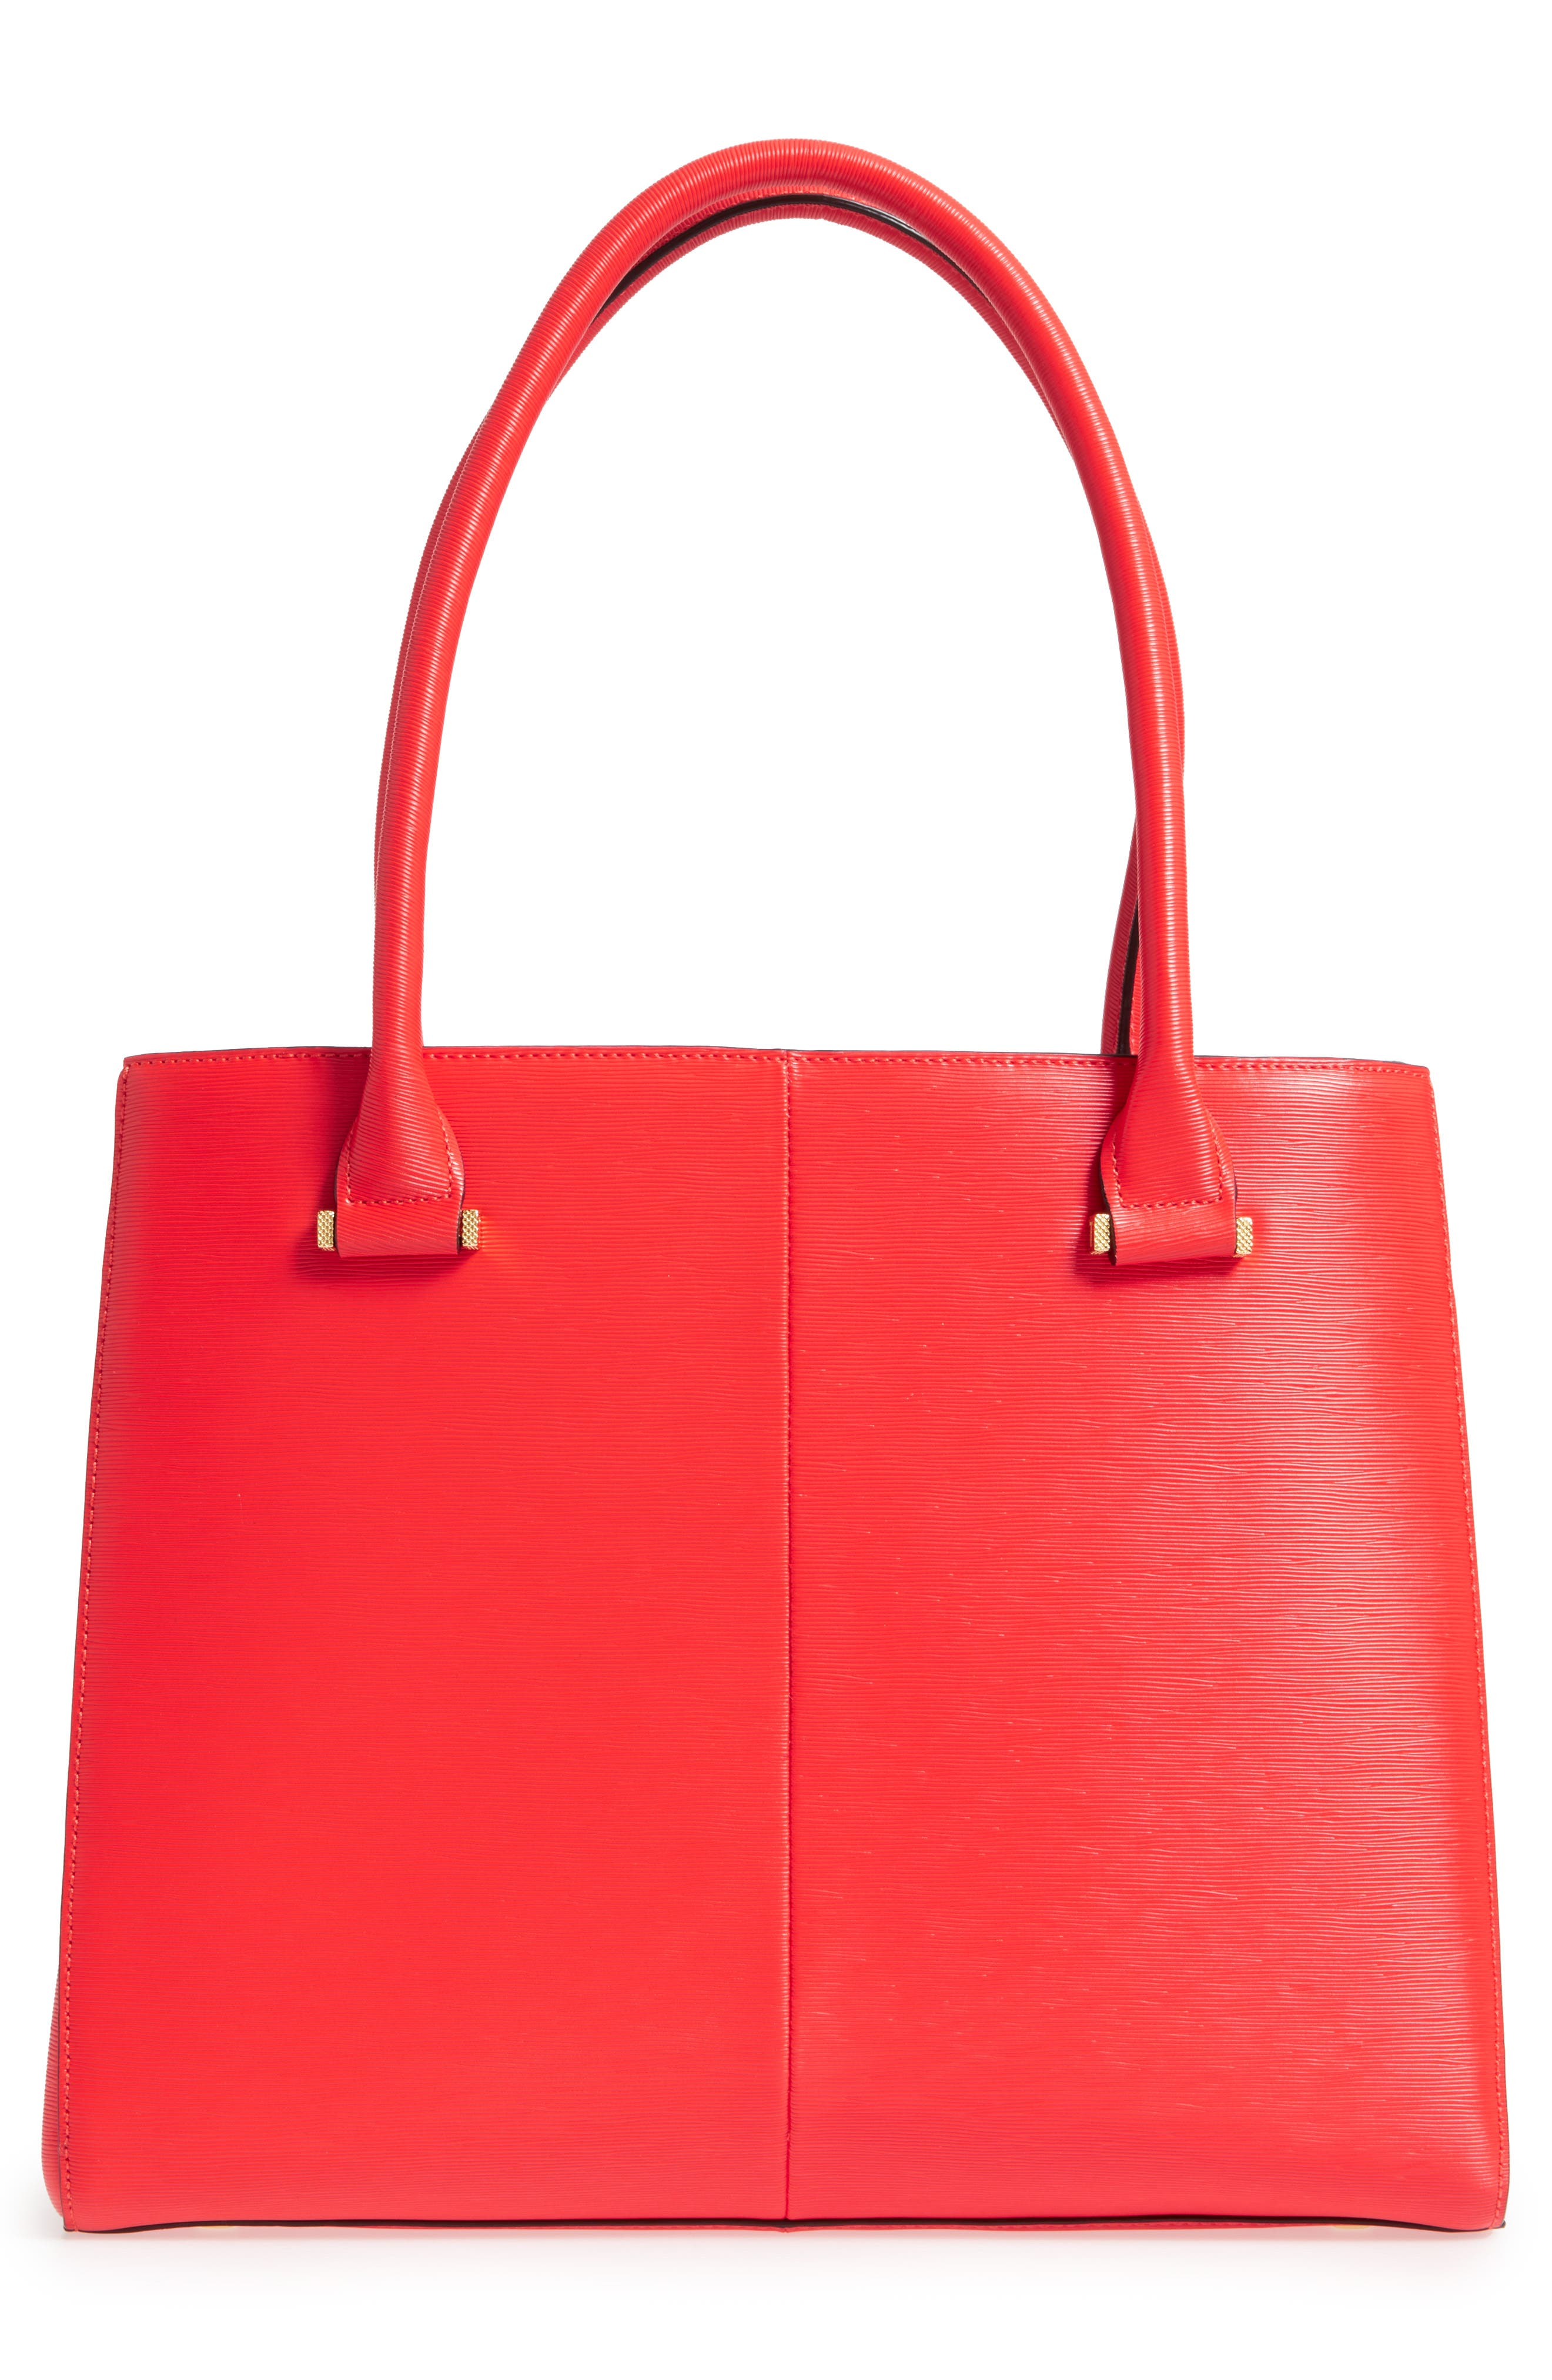 Callaa Bow Leather Shopper,                             Alternate thumbnail 2, color,                             Bright Red